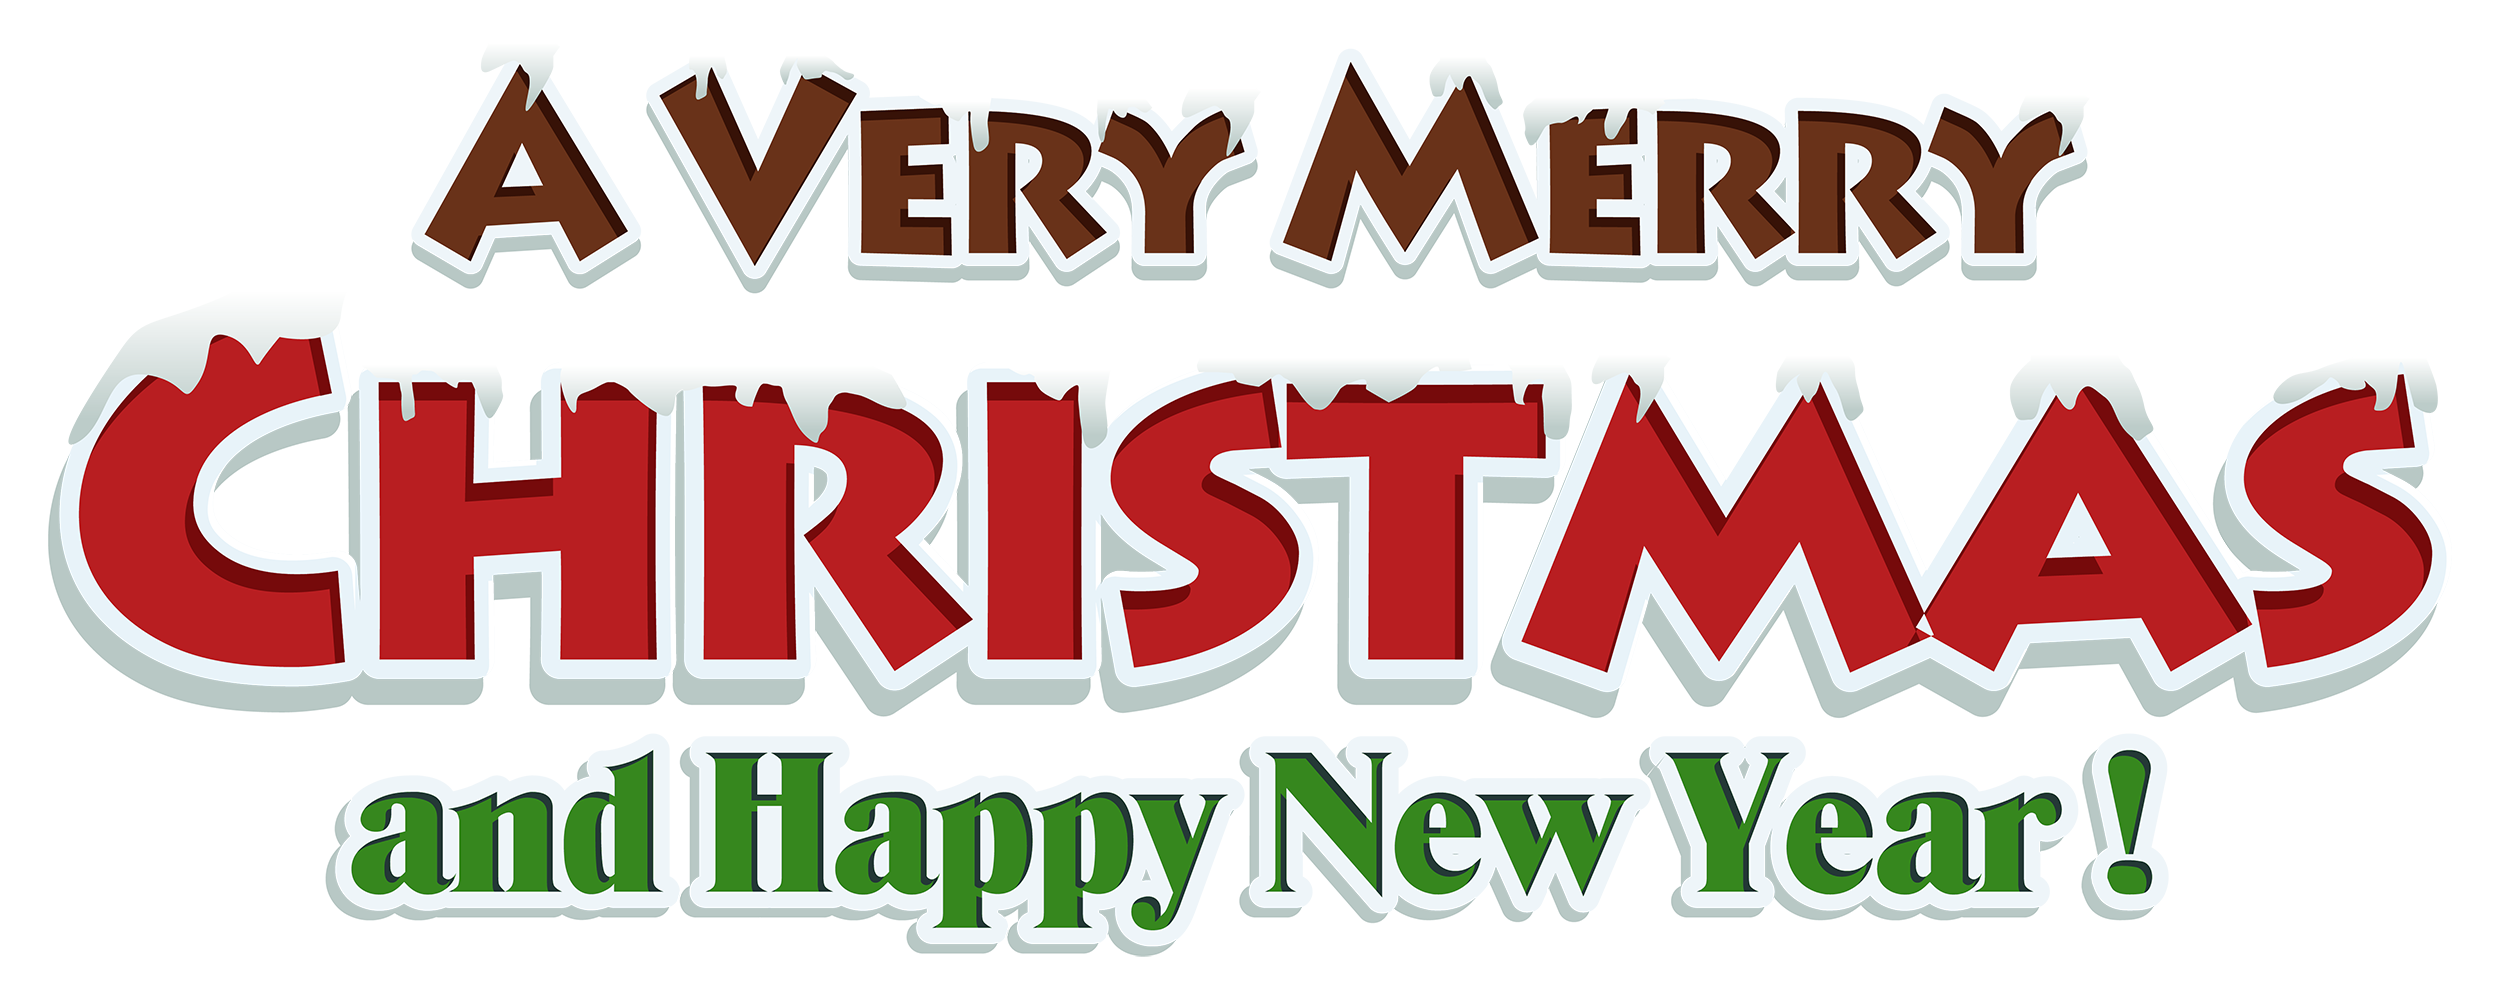 Merry christmas words clipart jpg royalty free stock HAVE A VERY MERRY CHRISTMAS FROM COSMETIC GYN CENTER | Dr Dallas ... jpg royalty free stock